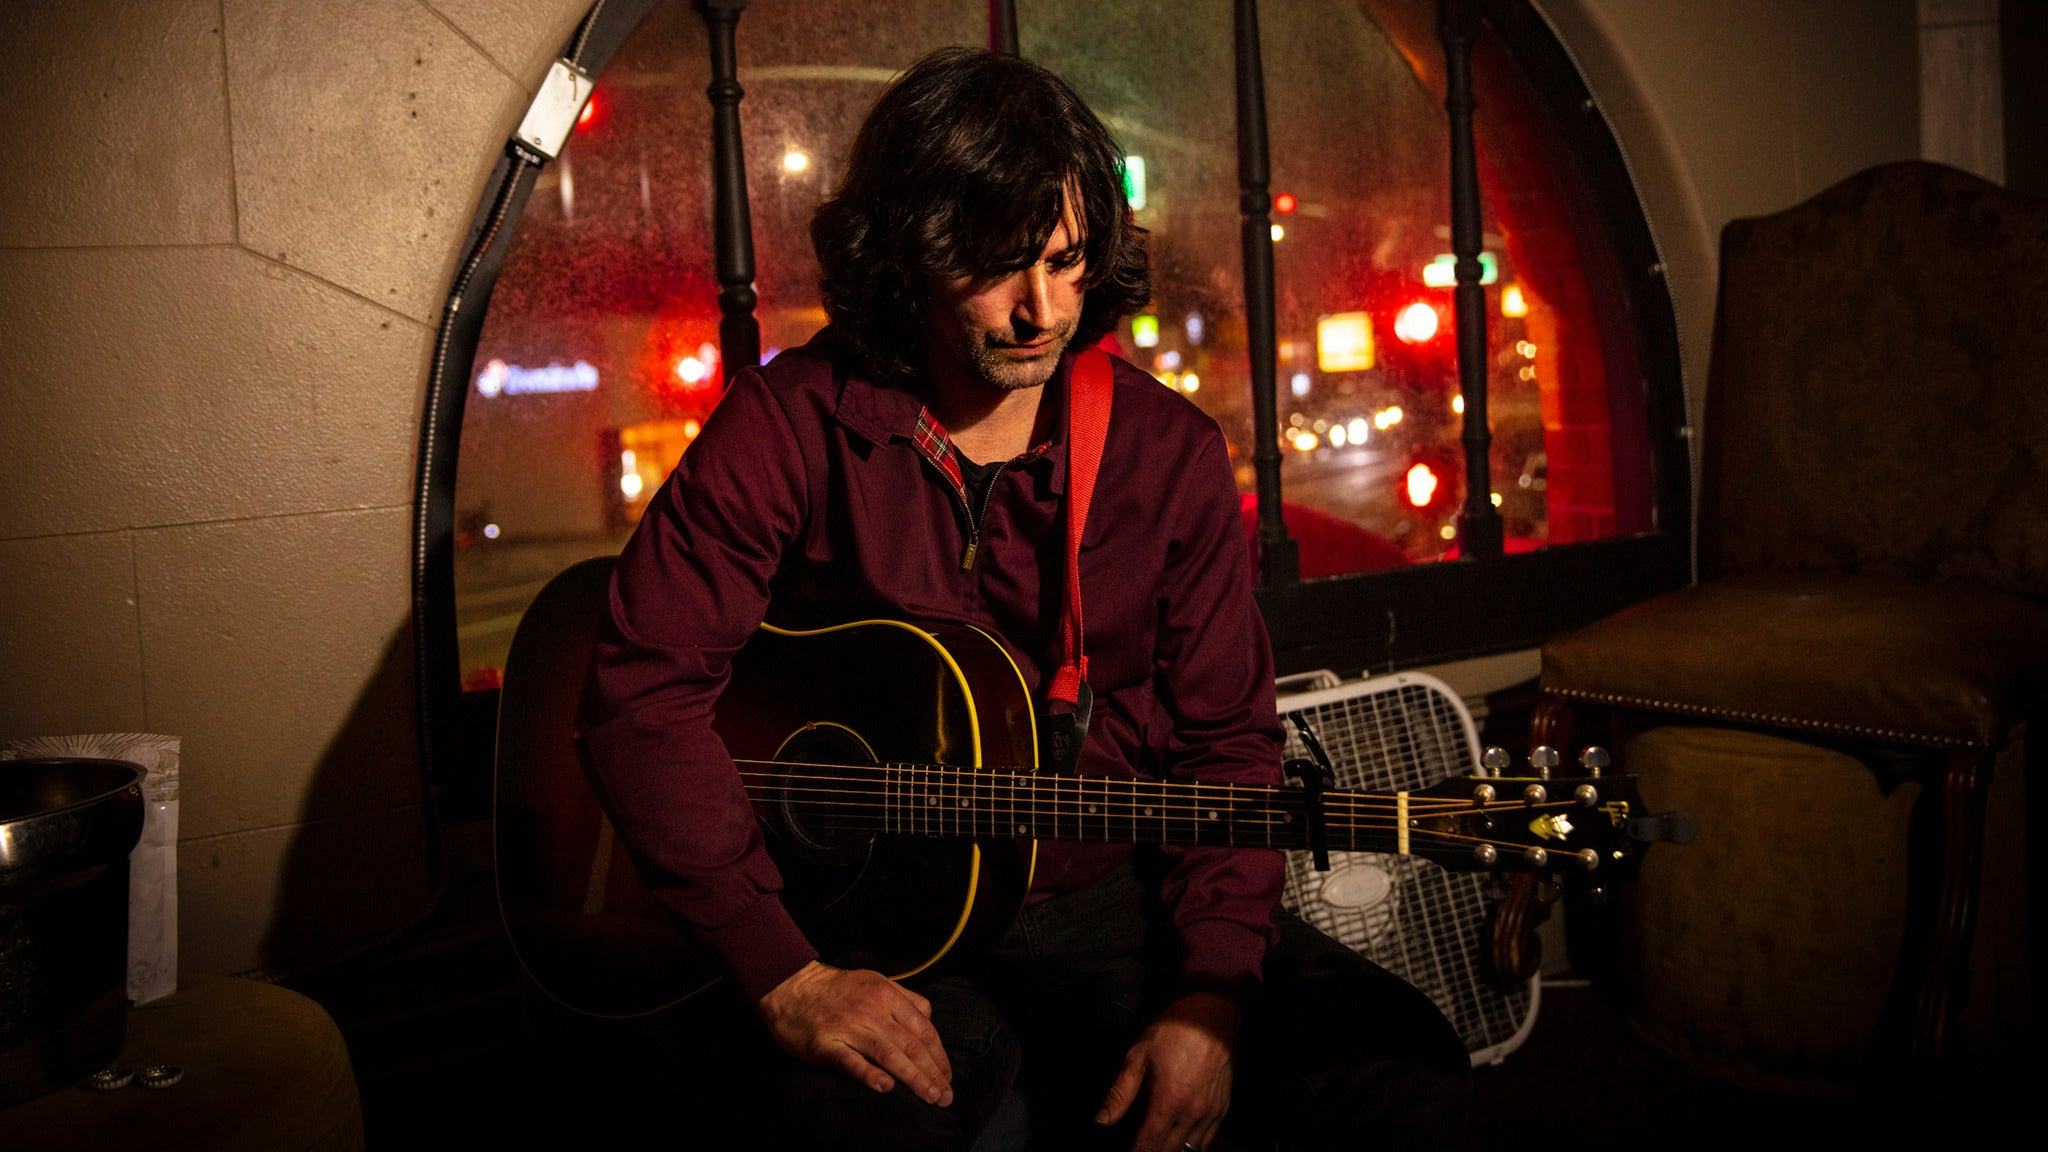 An Evening with Pete Yorn - You & Me Solo Acoustic Tour